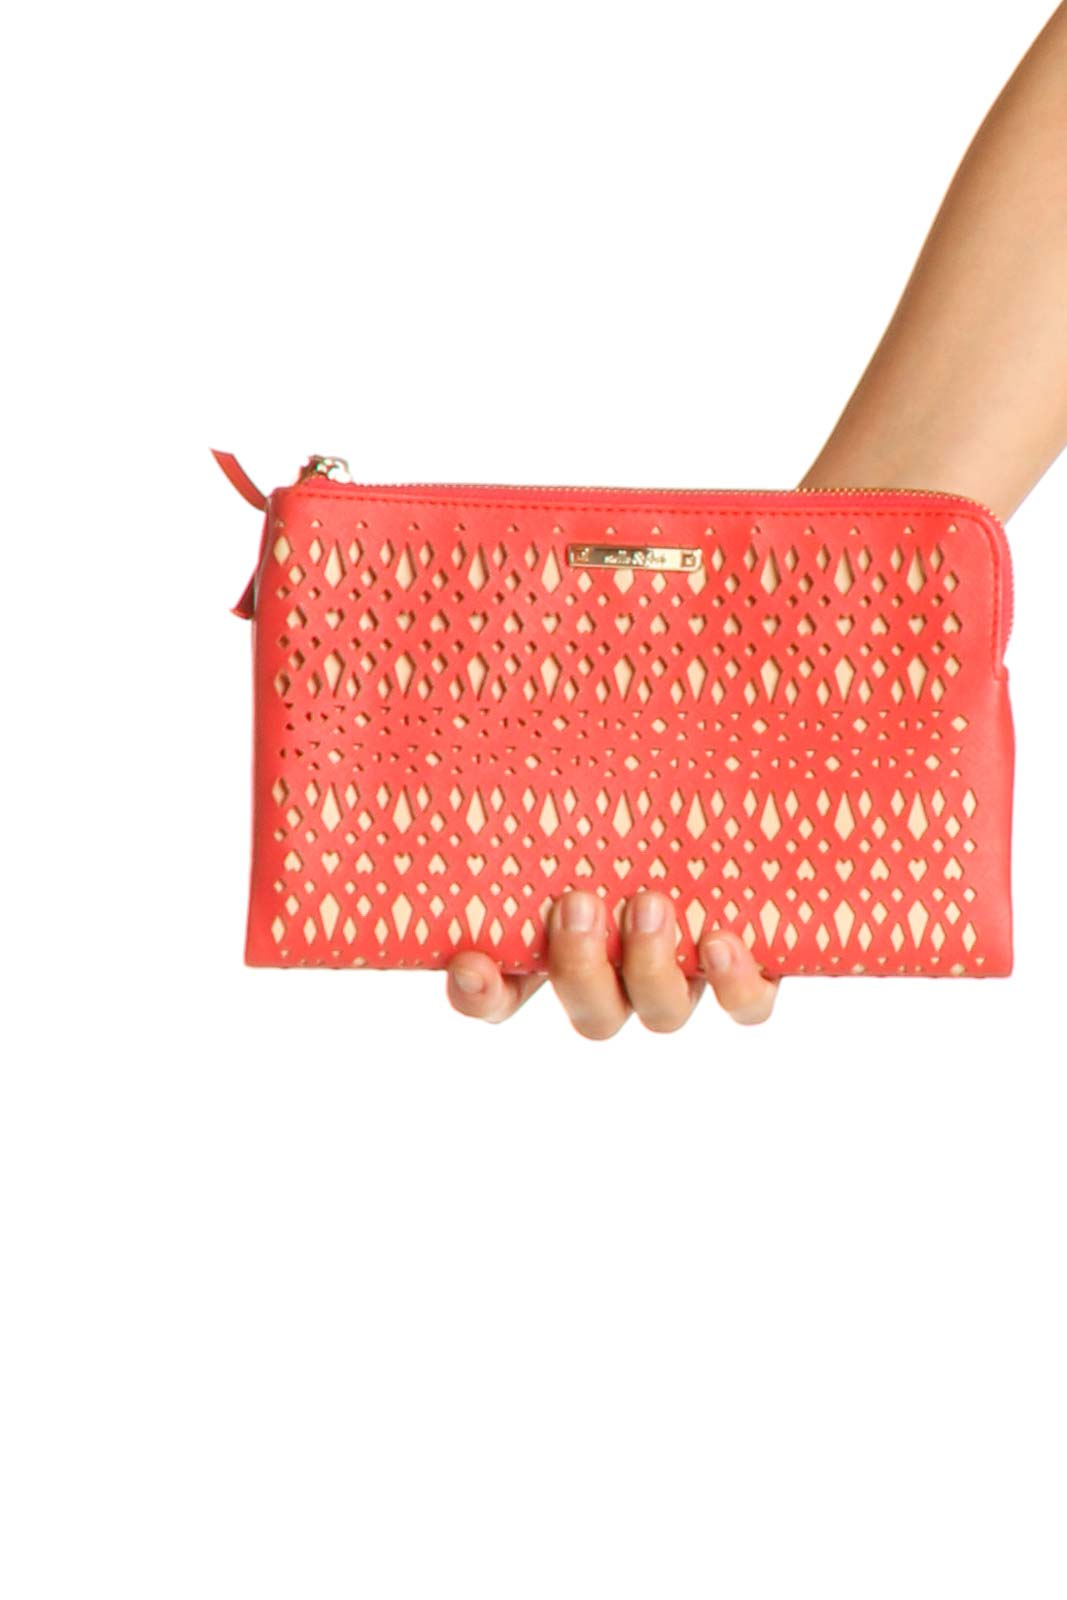 Orange Clutch Bag Front